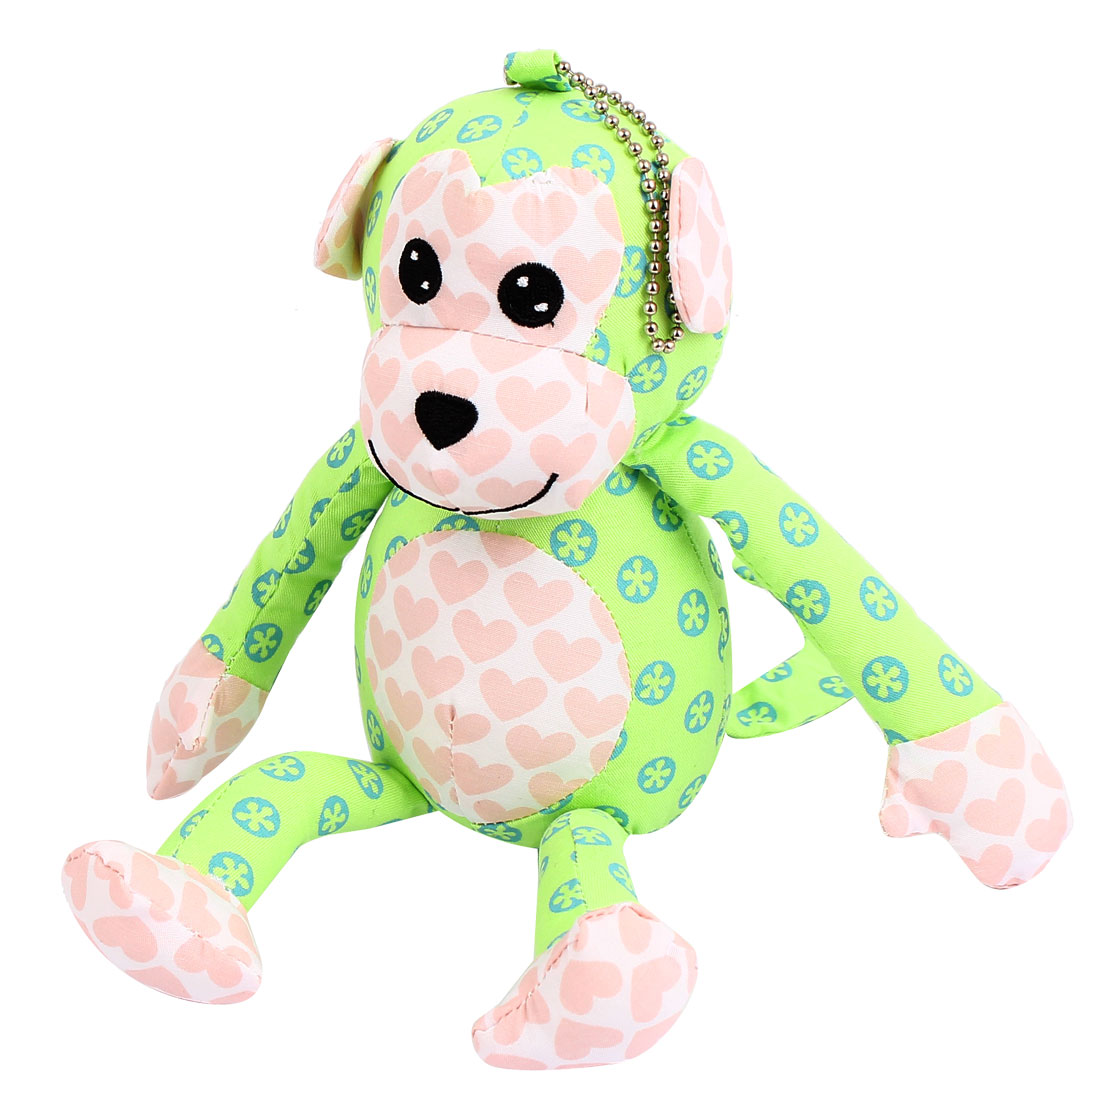 Metal Ball Chain Dot Pattern Bag Decoration Monkey Doll Toy Pendant Light Green